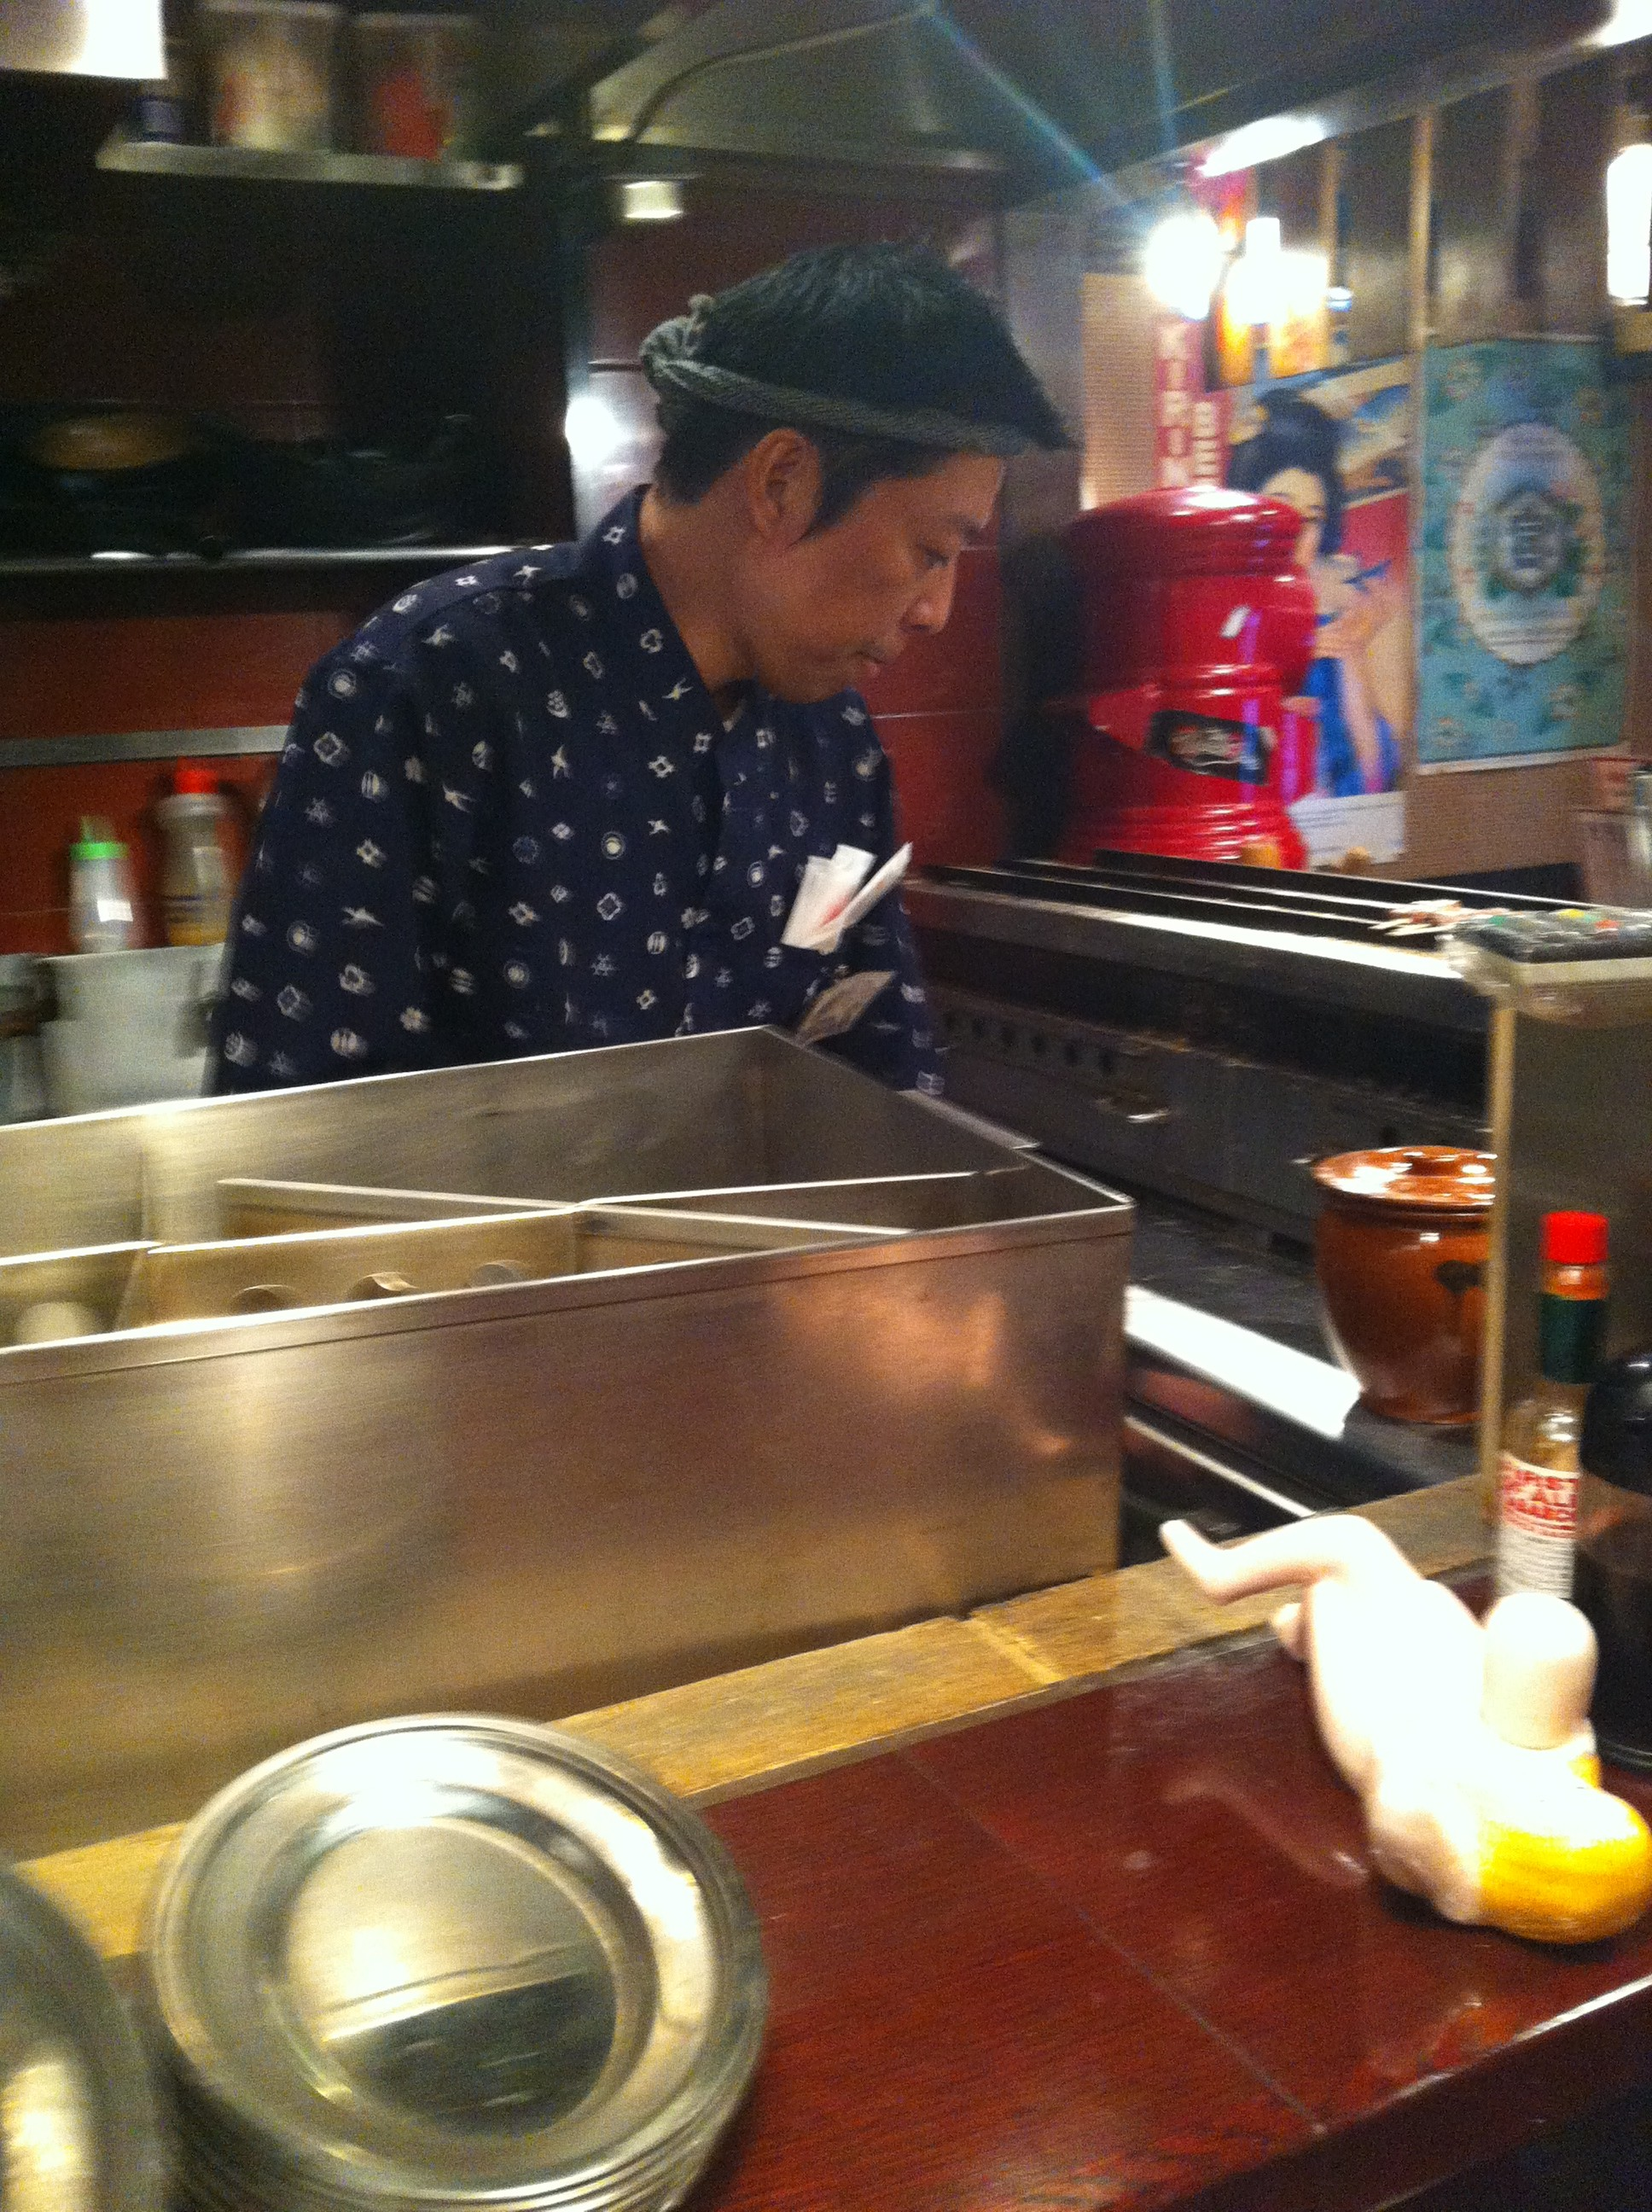 Tusha's Japan I: Japan from the Outside